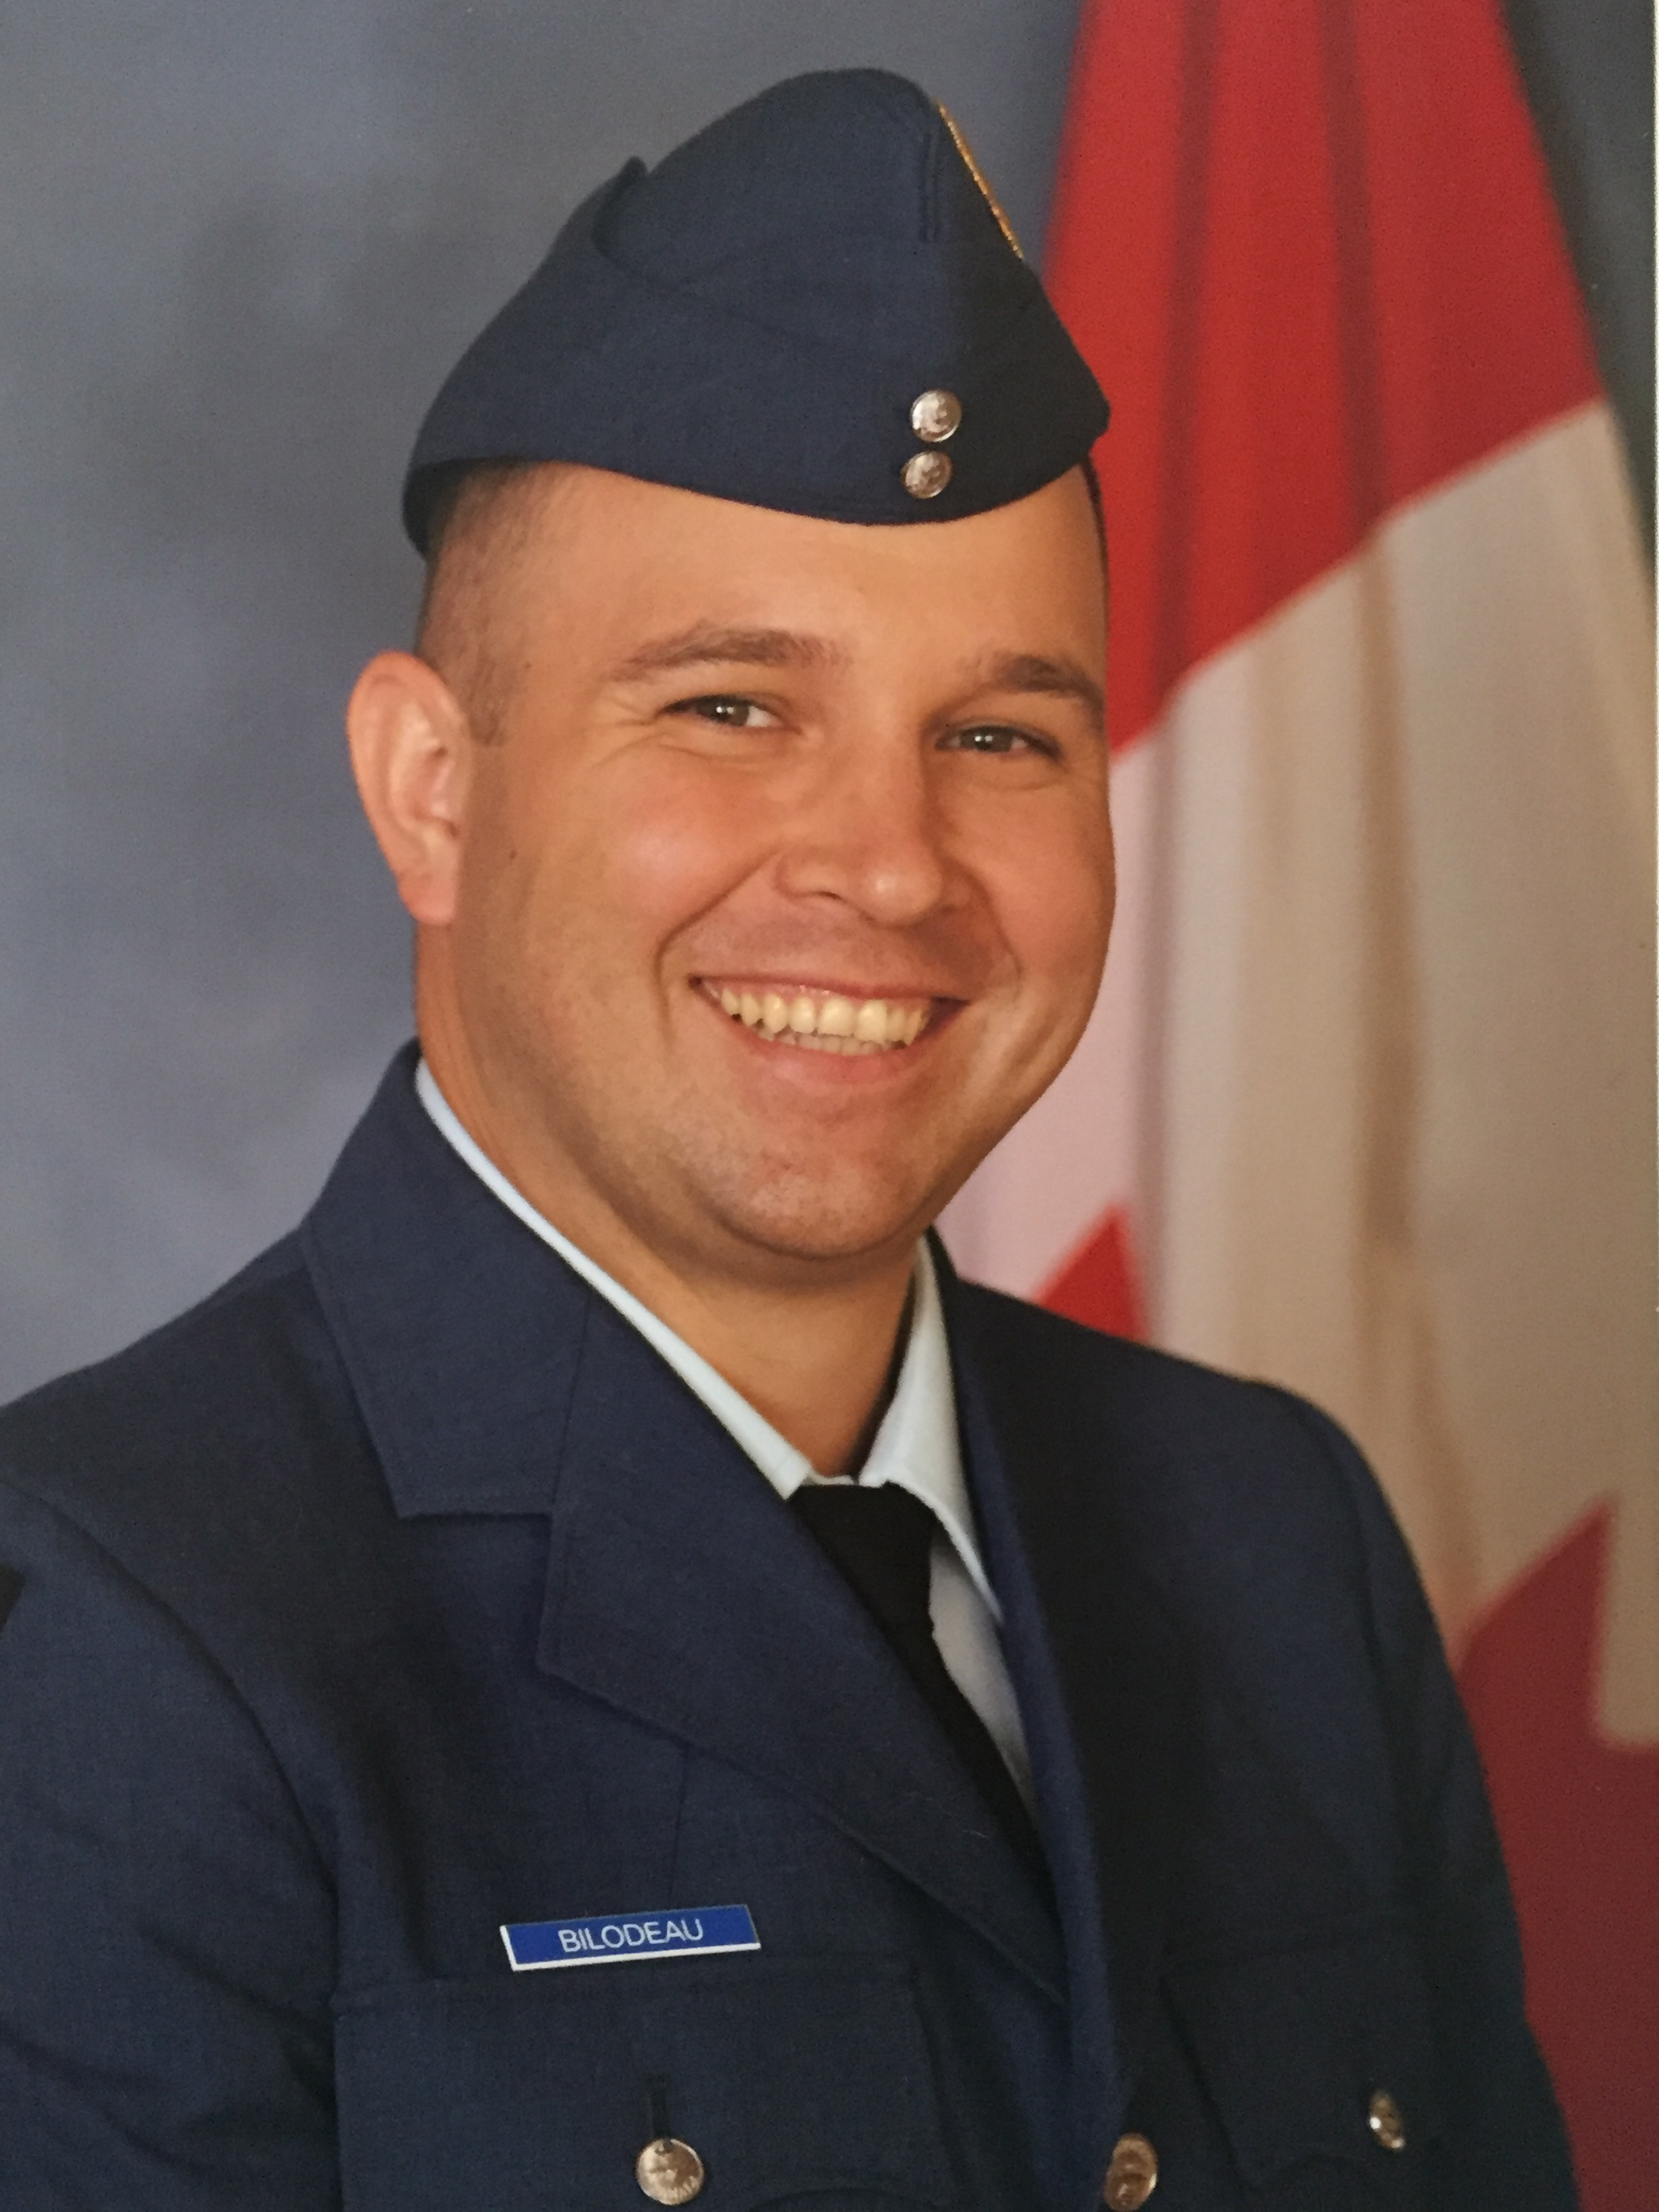 Second Lieutenant Randy Bilodeau